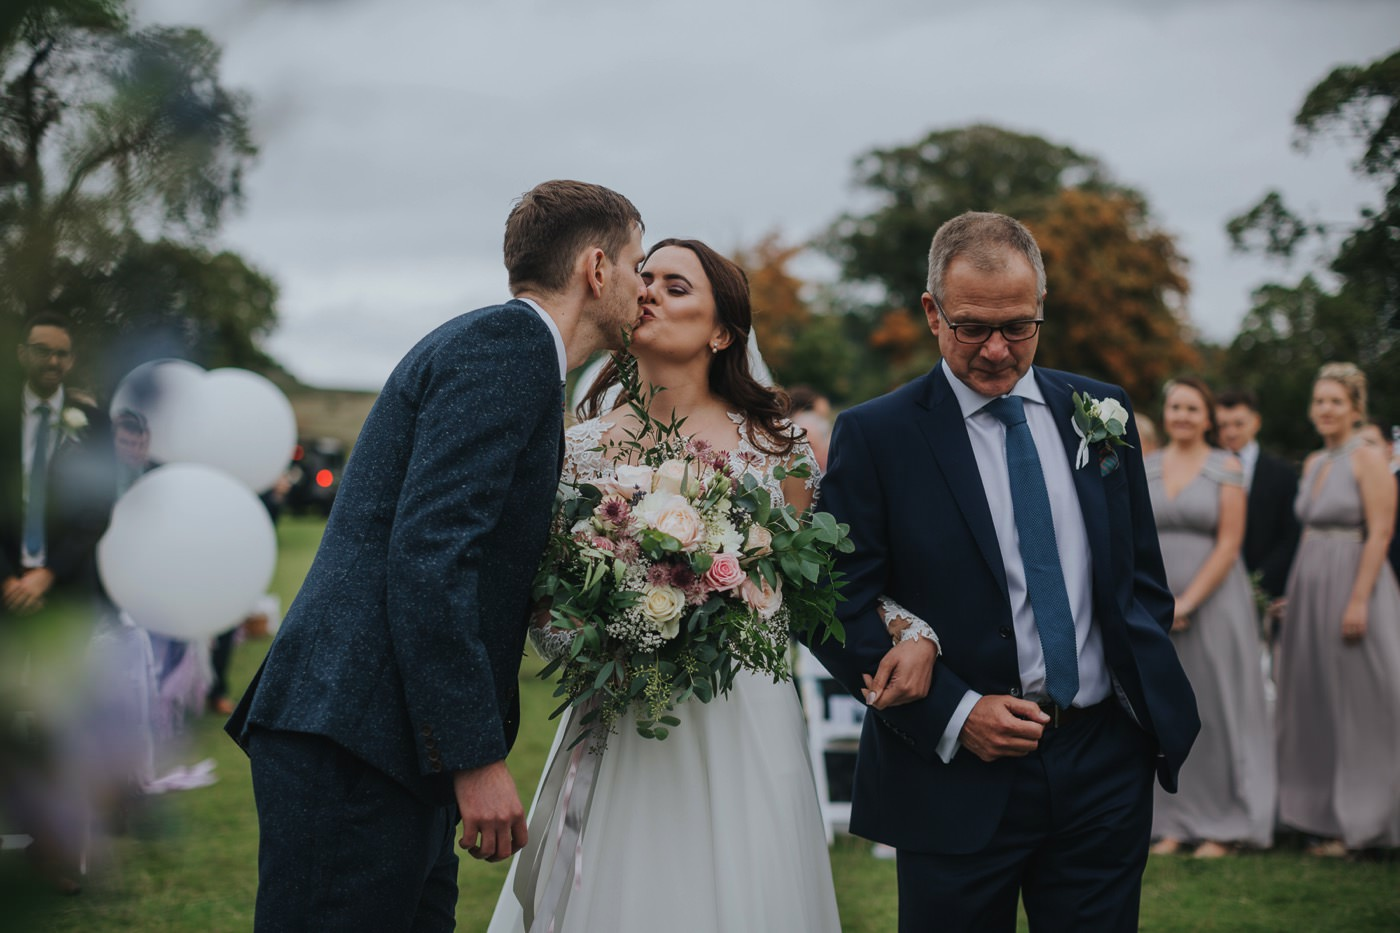 Steve & Tiffany | Bradgate Park wedding 55